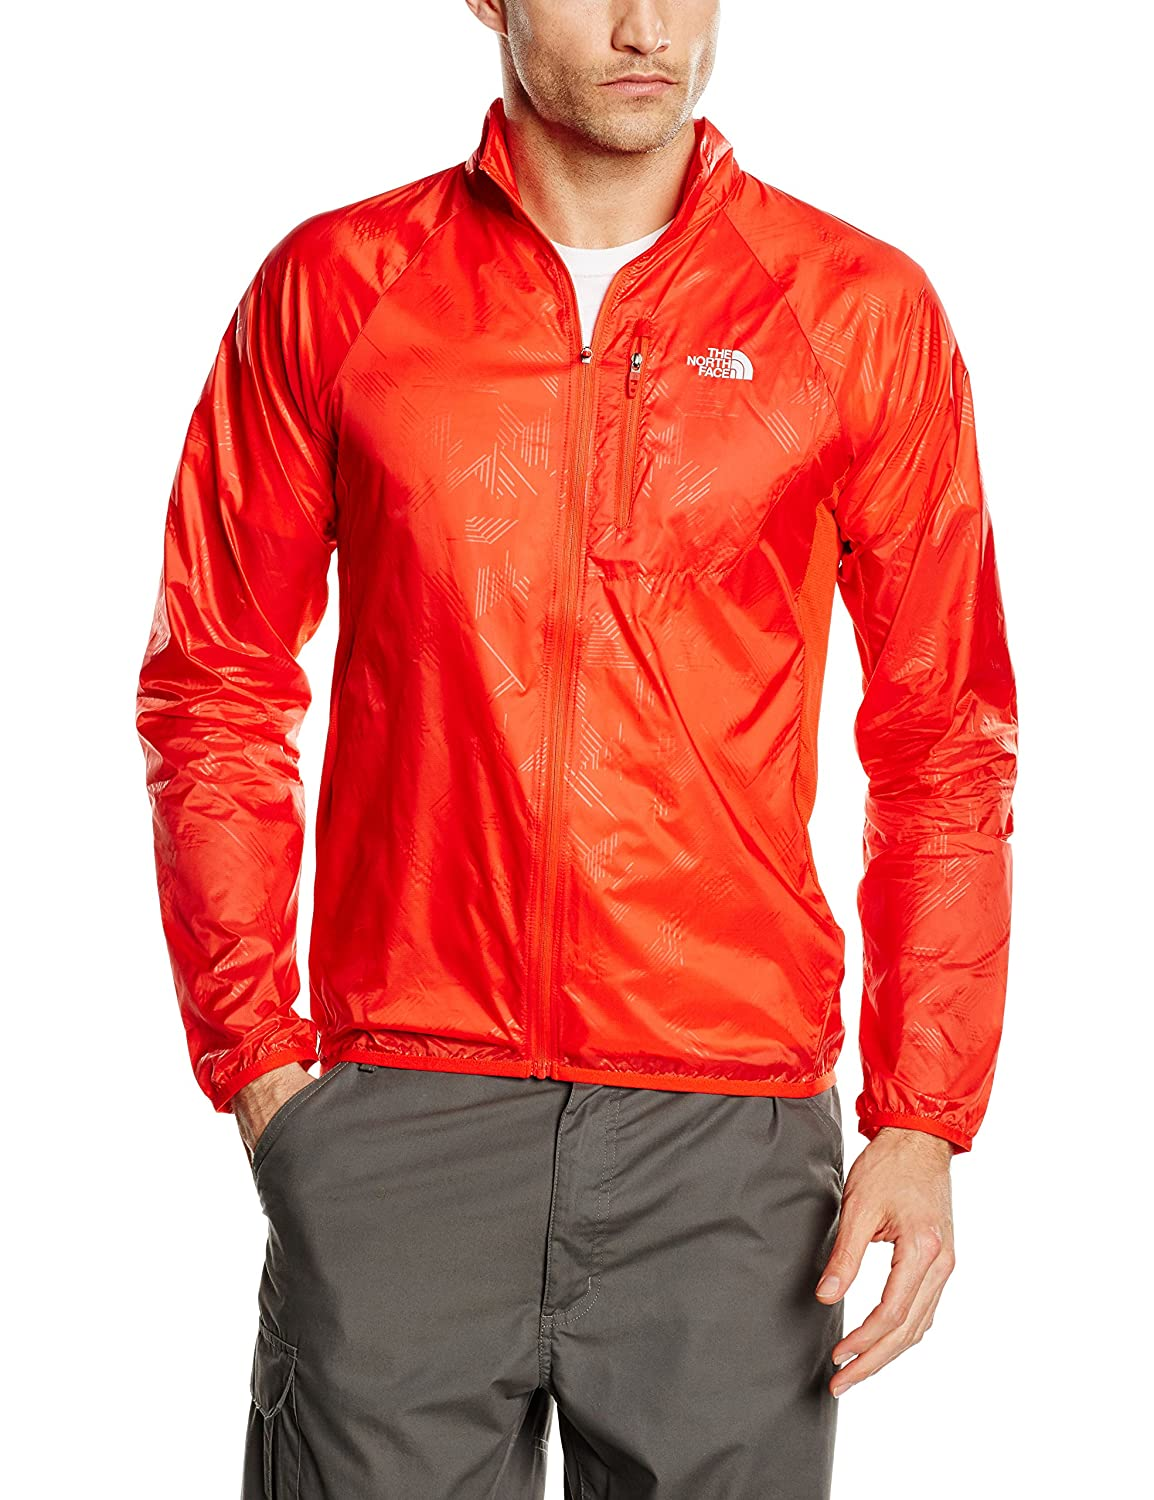 TALLA M. The North Face Nsr Wind EU - Chaqueta para Hombre